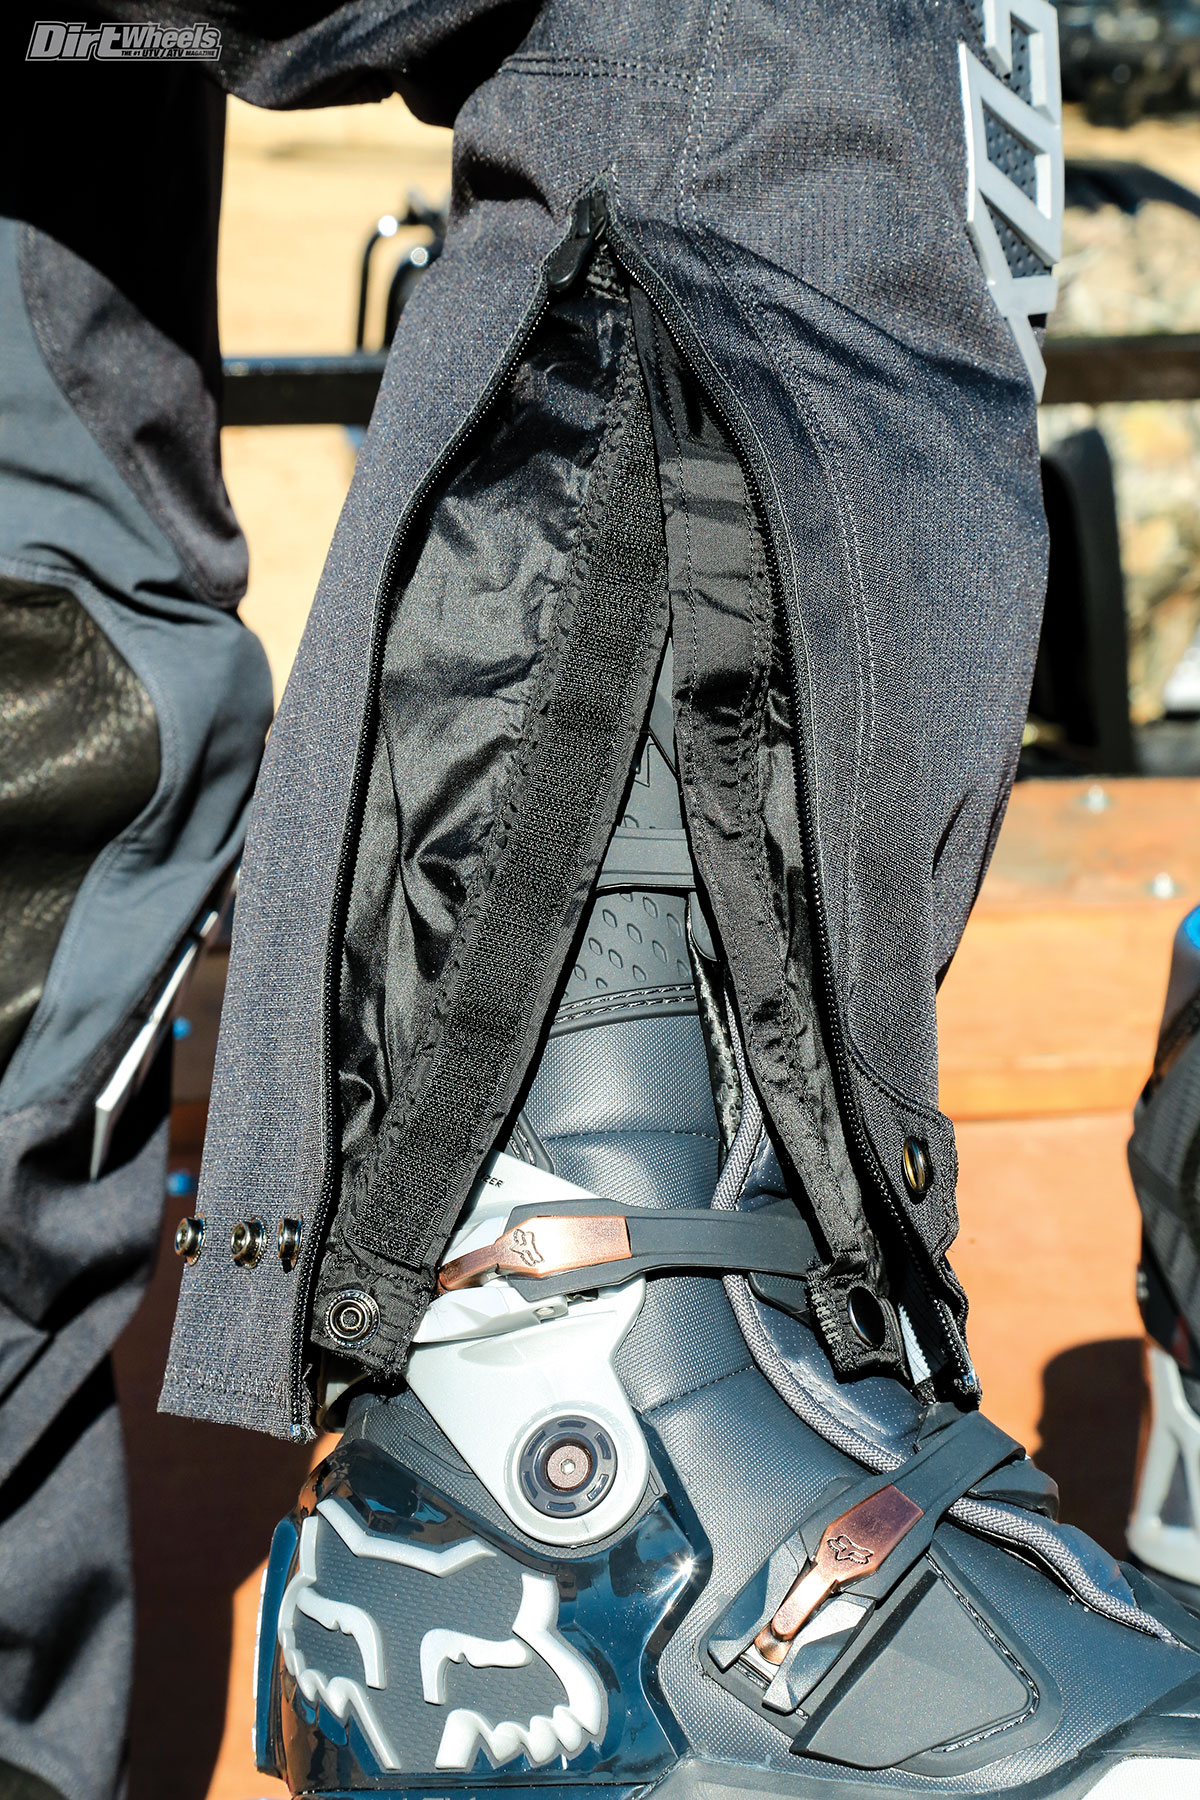 The EX pant requires you to unzip and open up the inner and outer panels to put the pant legs over the boots. There is a tab on the bottom of the inner leg panel that you can clasp to the boots so the pant doesn't ride up.